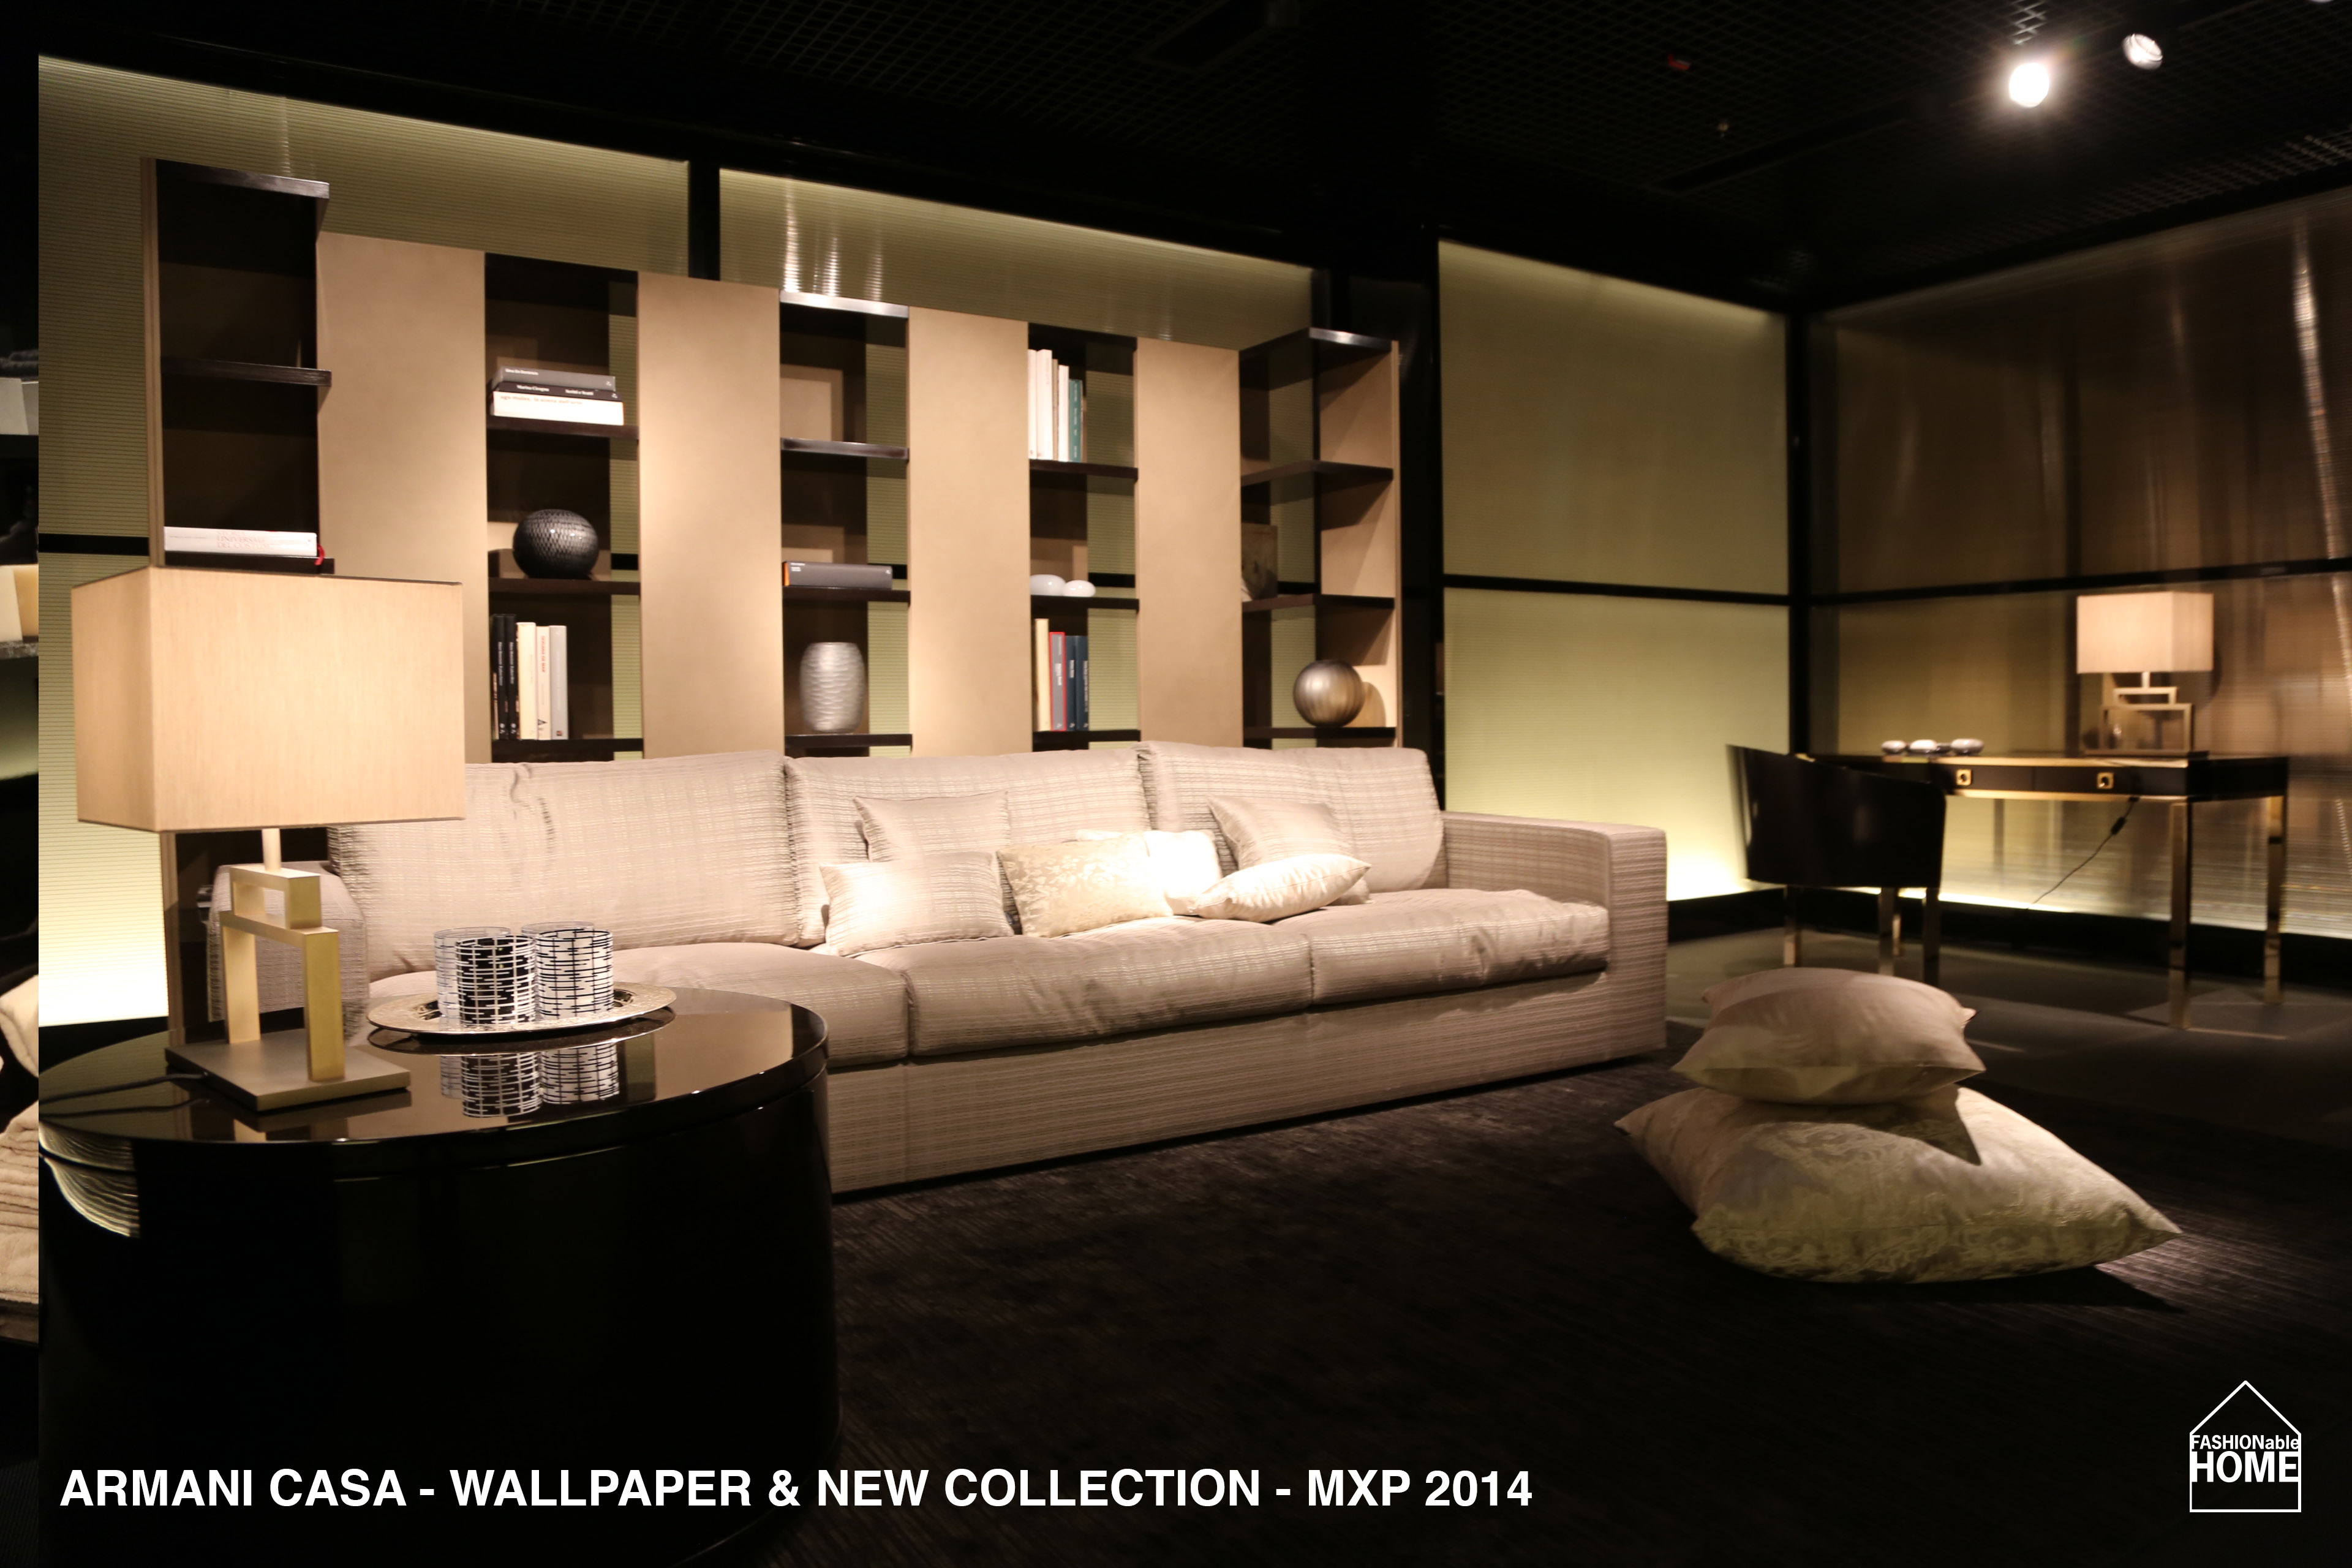 New ARMANI CASA Wallpapers collection items Milano 2014 3840x2560